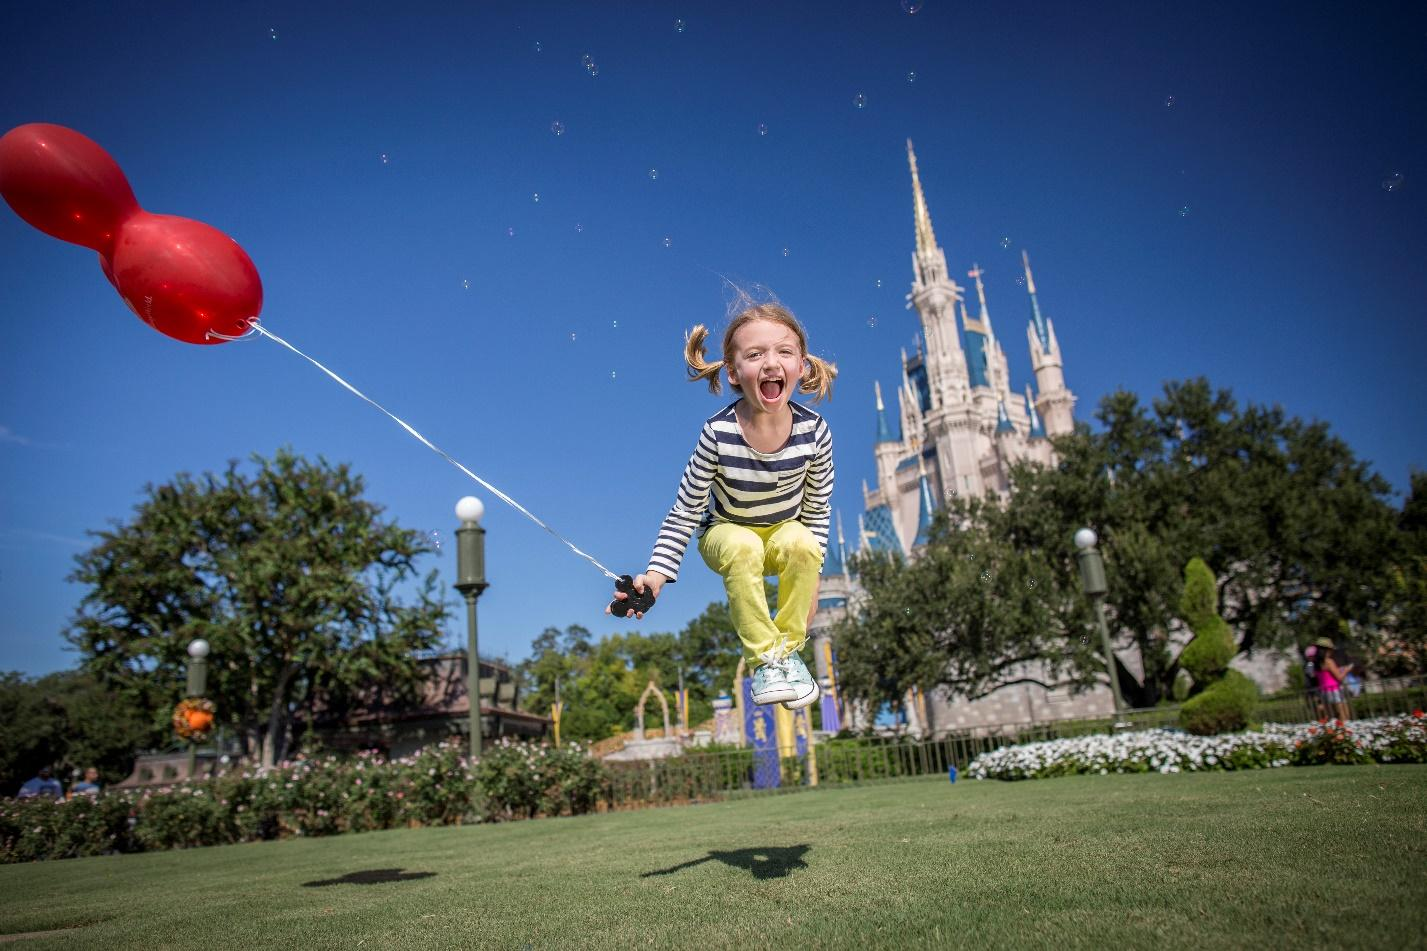 Young blonde girl jumping for joy holding a red mickey mouse balloon in front of the Walt Disney World castle